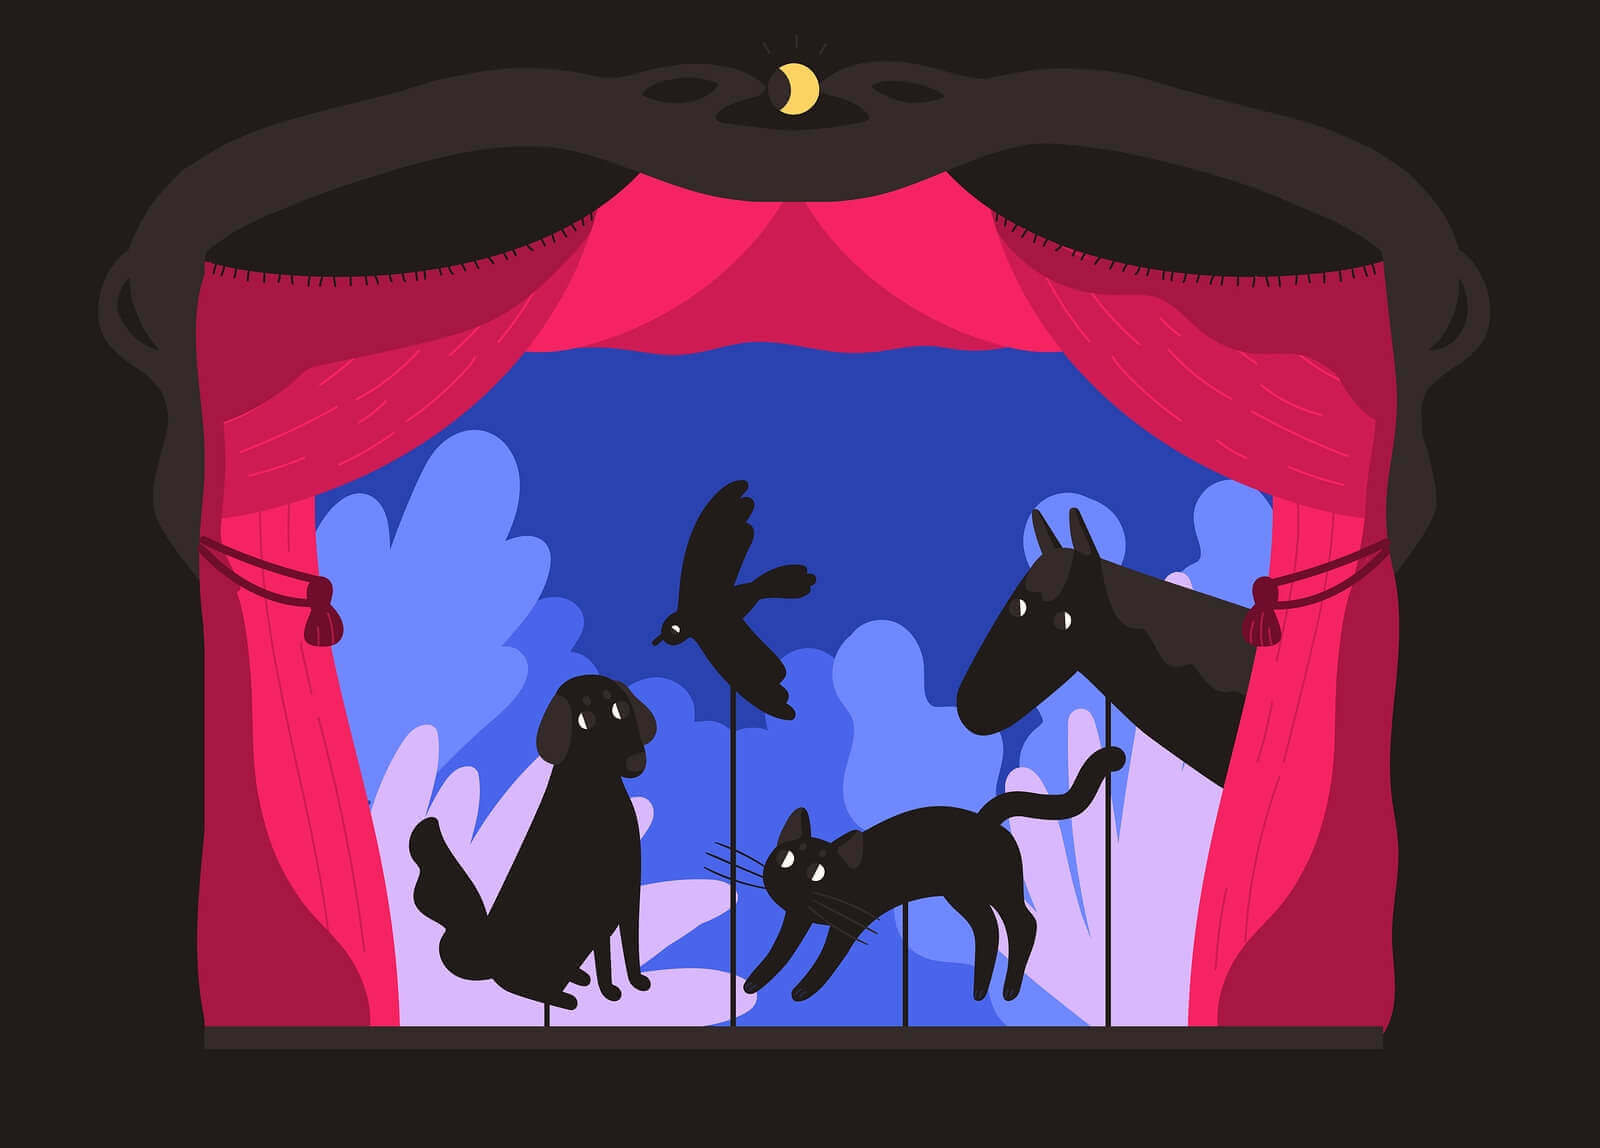 How to make a shadow puppet theater.